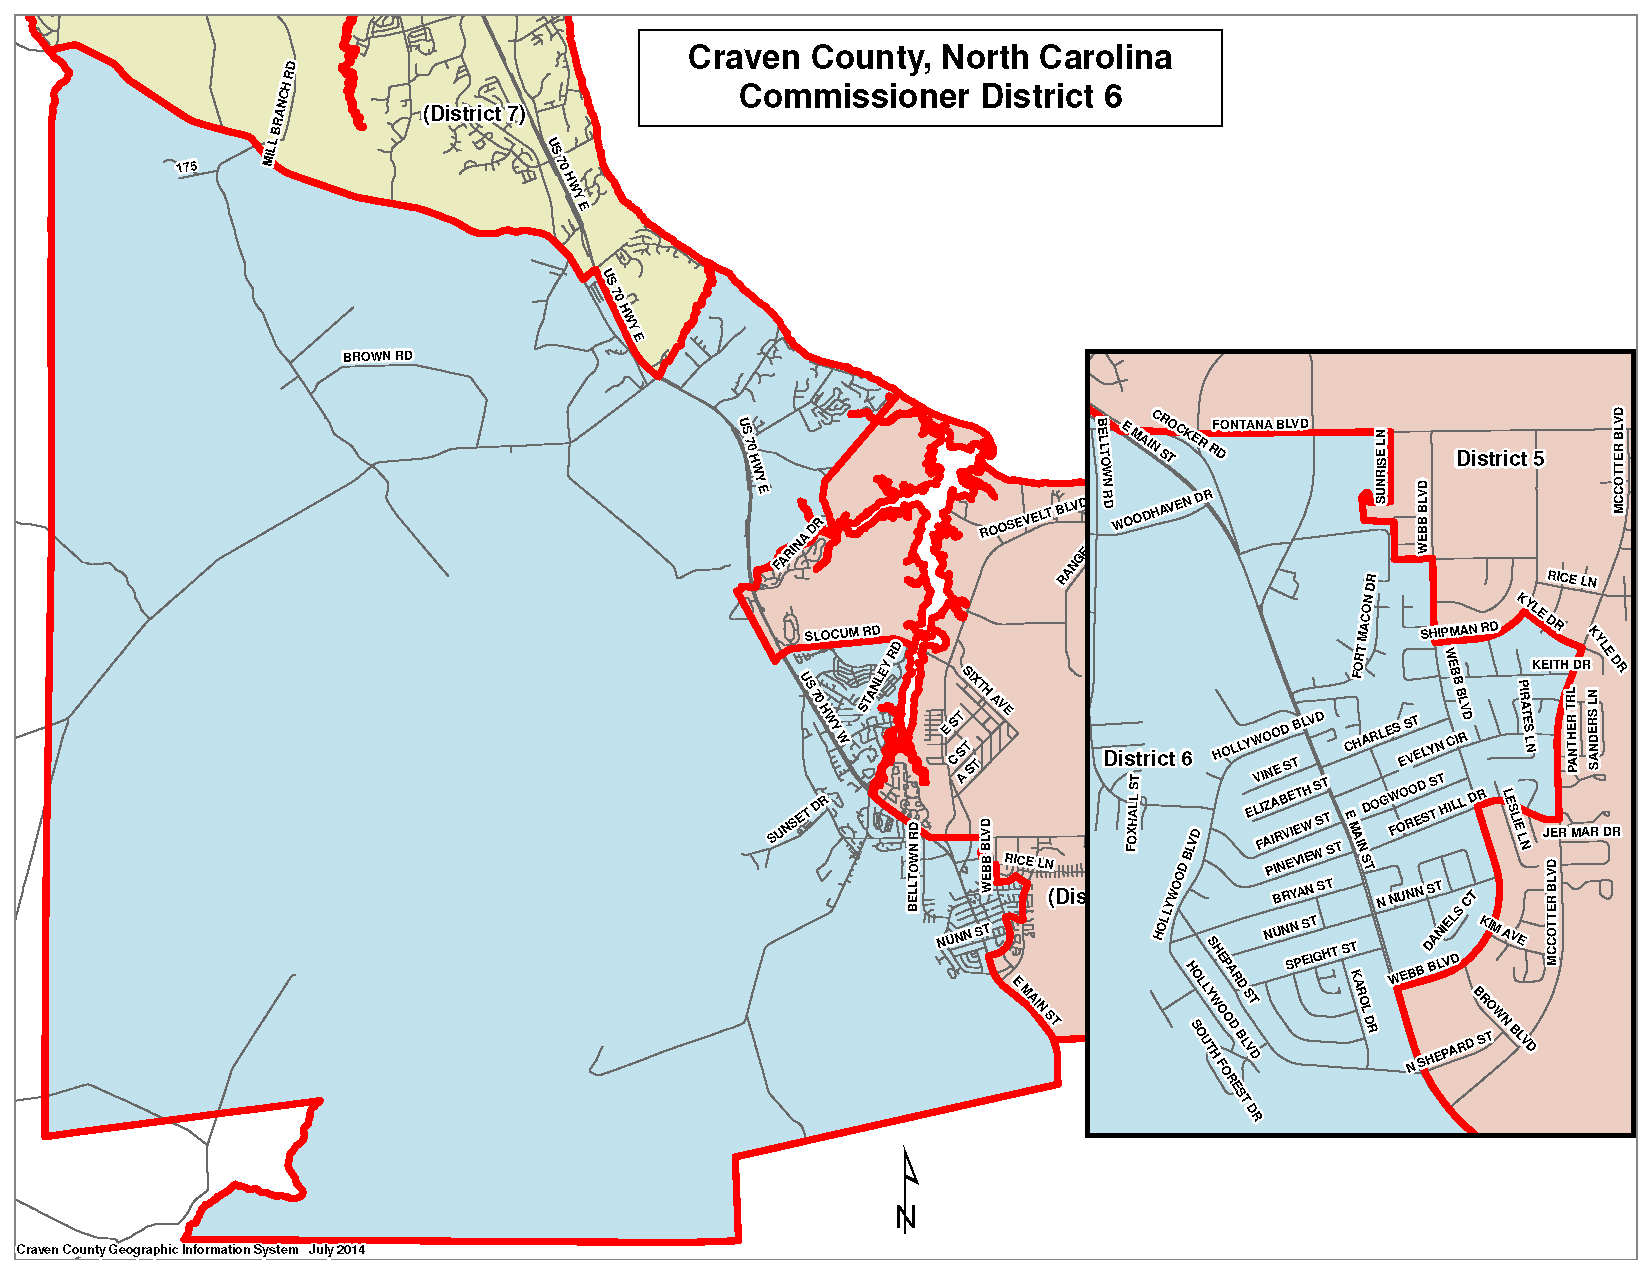 Commissioner District 6 Map